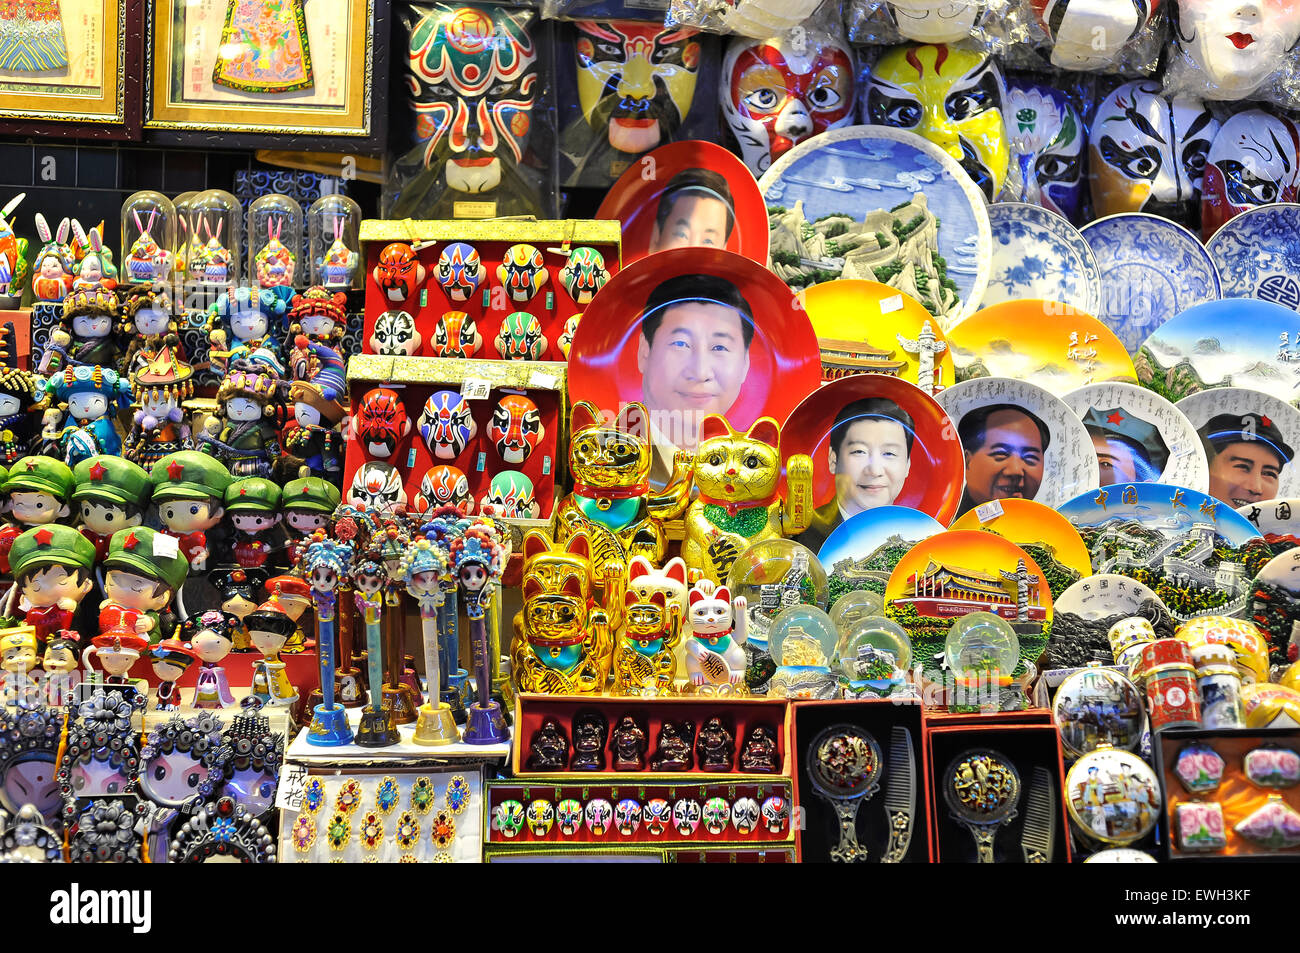 Xi Jinping face plates and other souvenirs on display at a Beijing night market - Stock Image